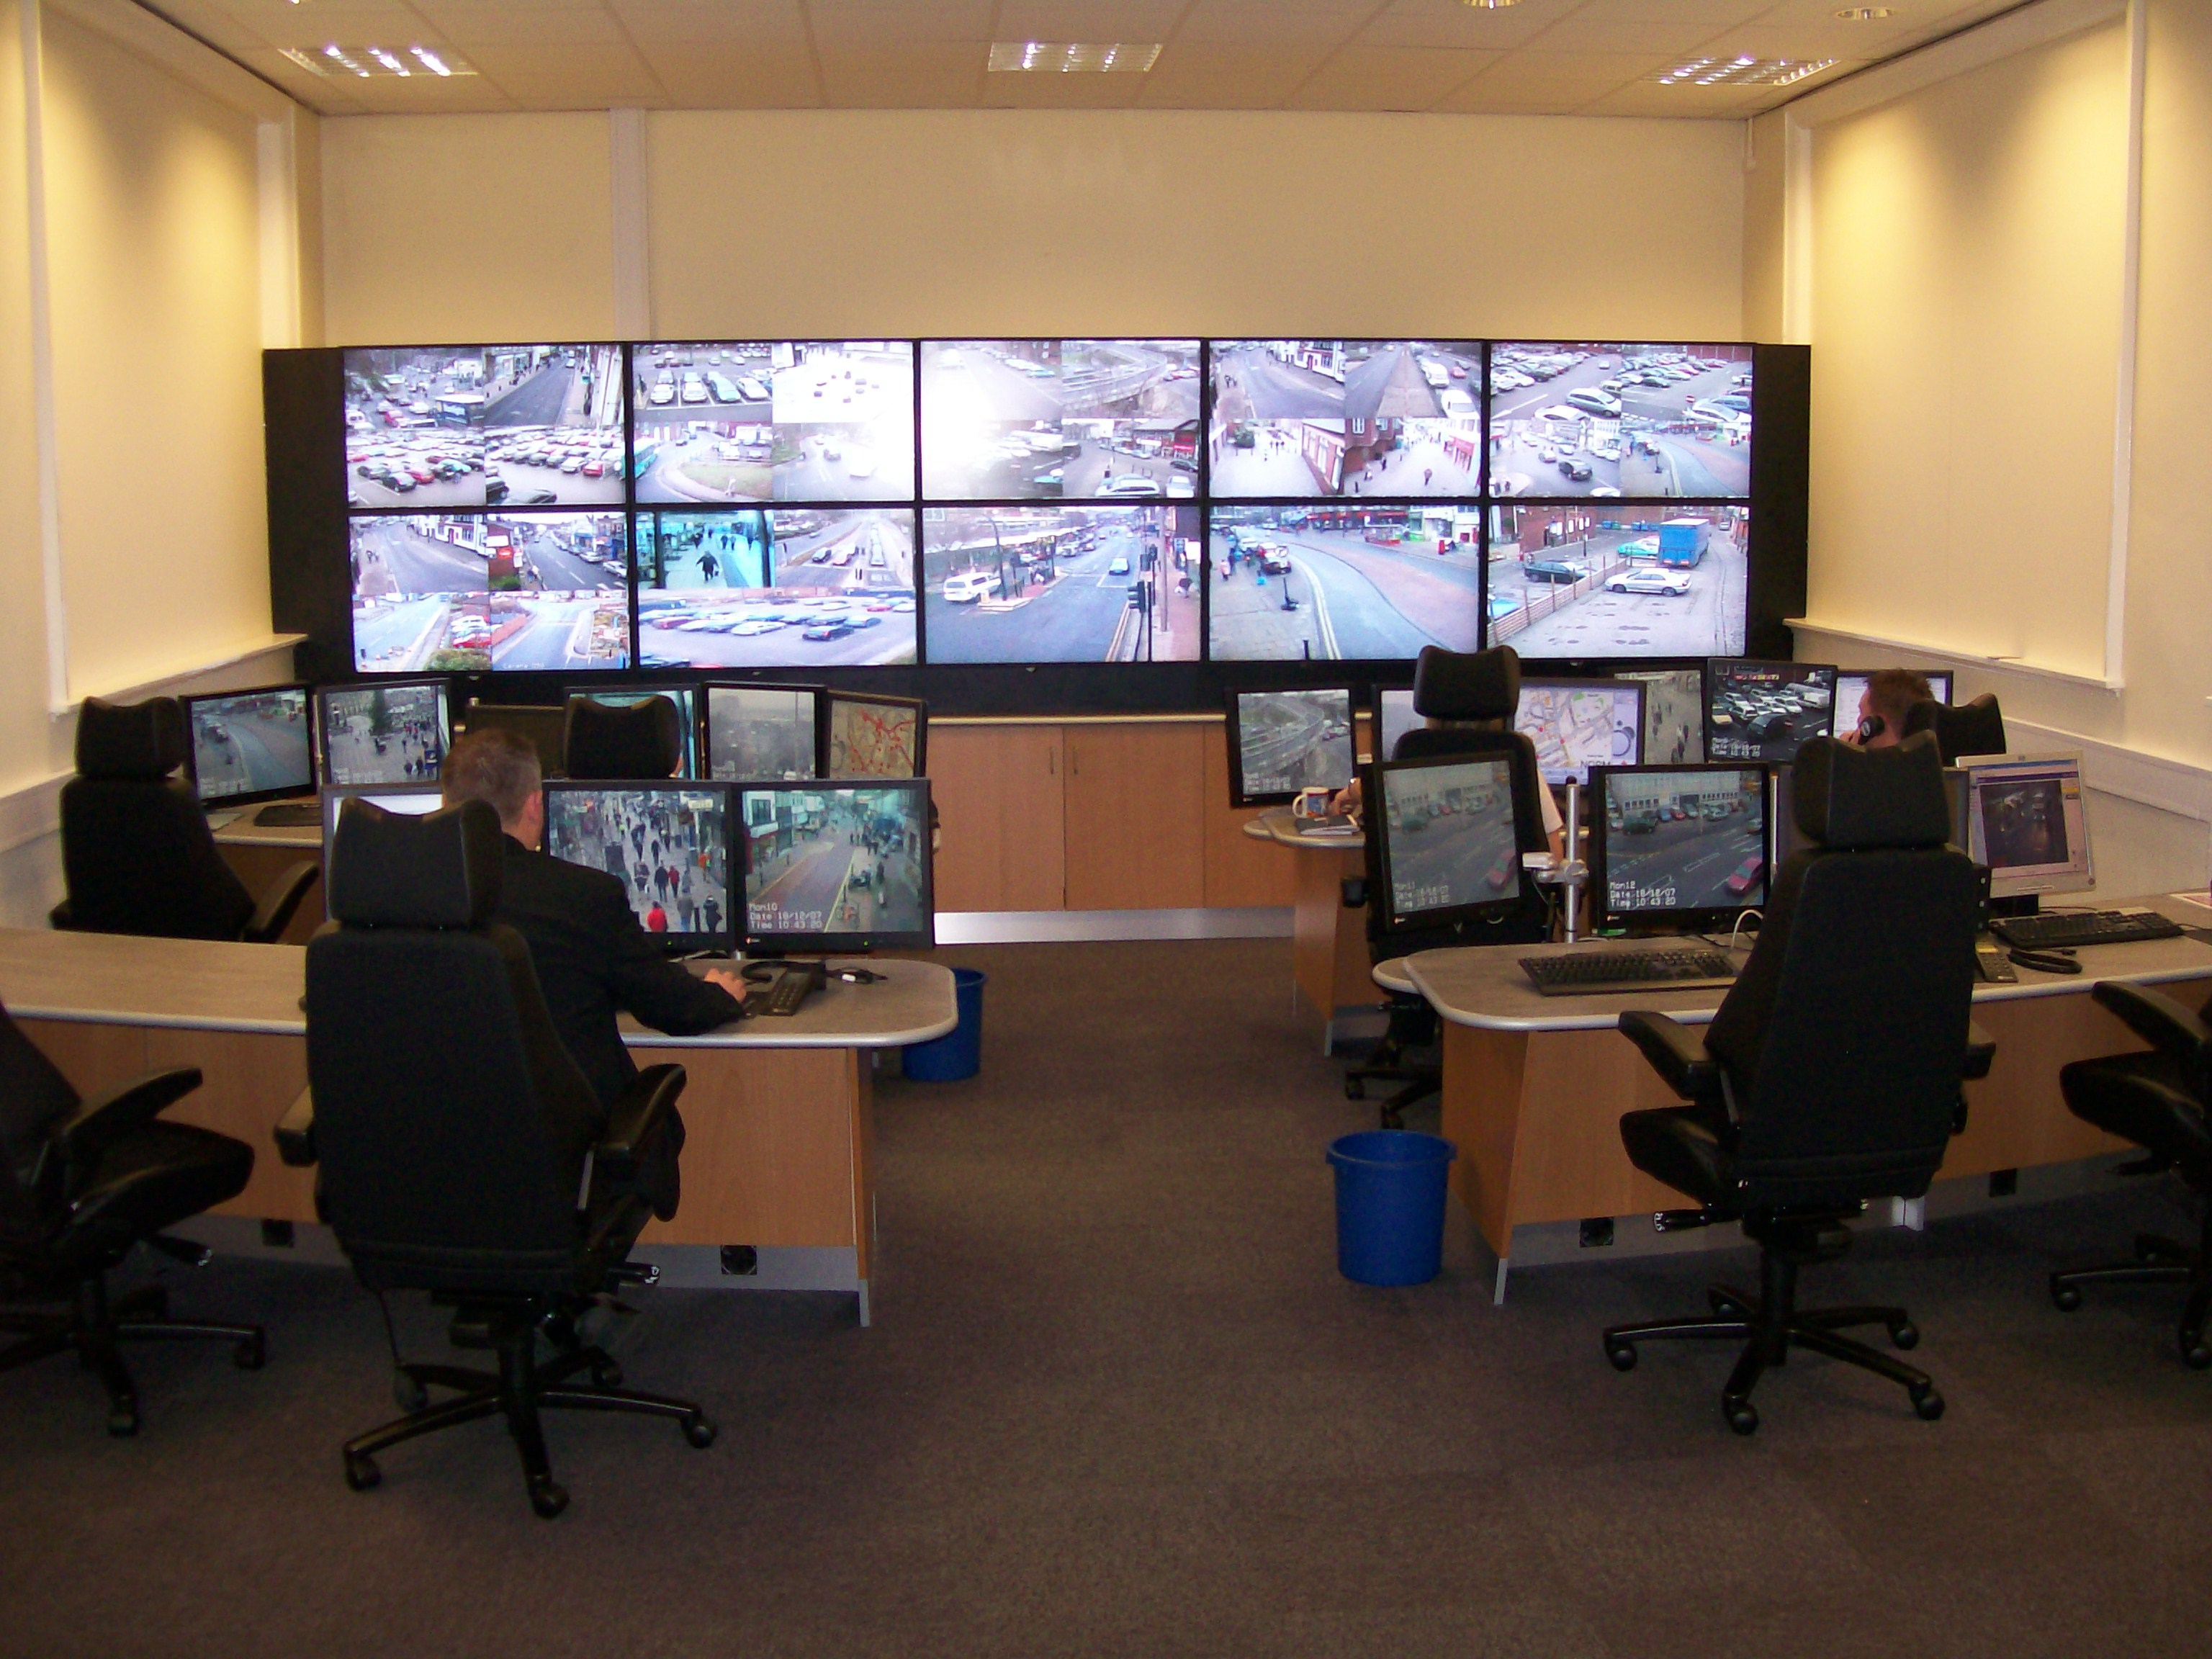 Wakefield mdc cctv control room intech solutions for Room design website